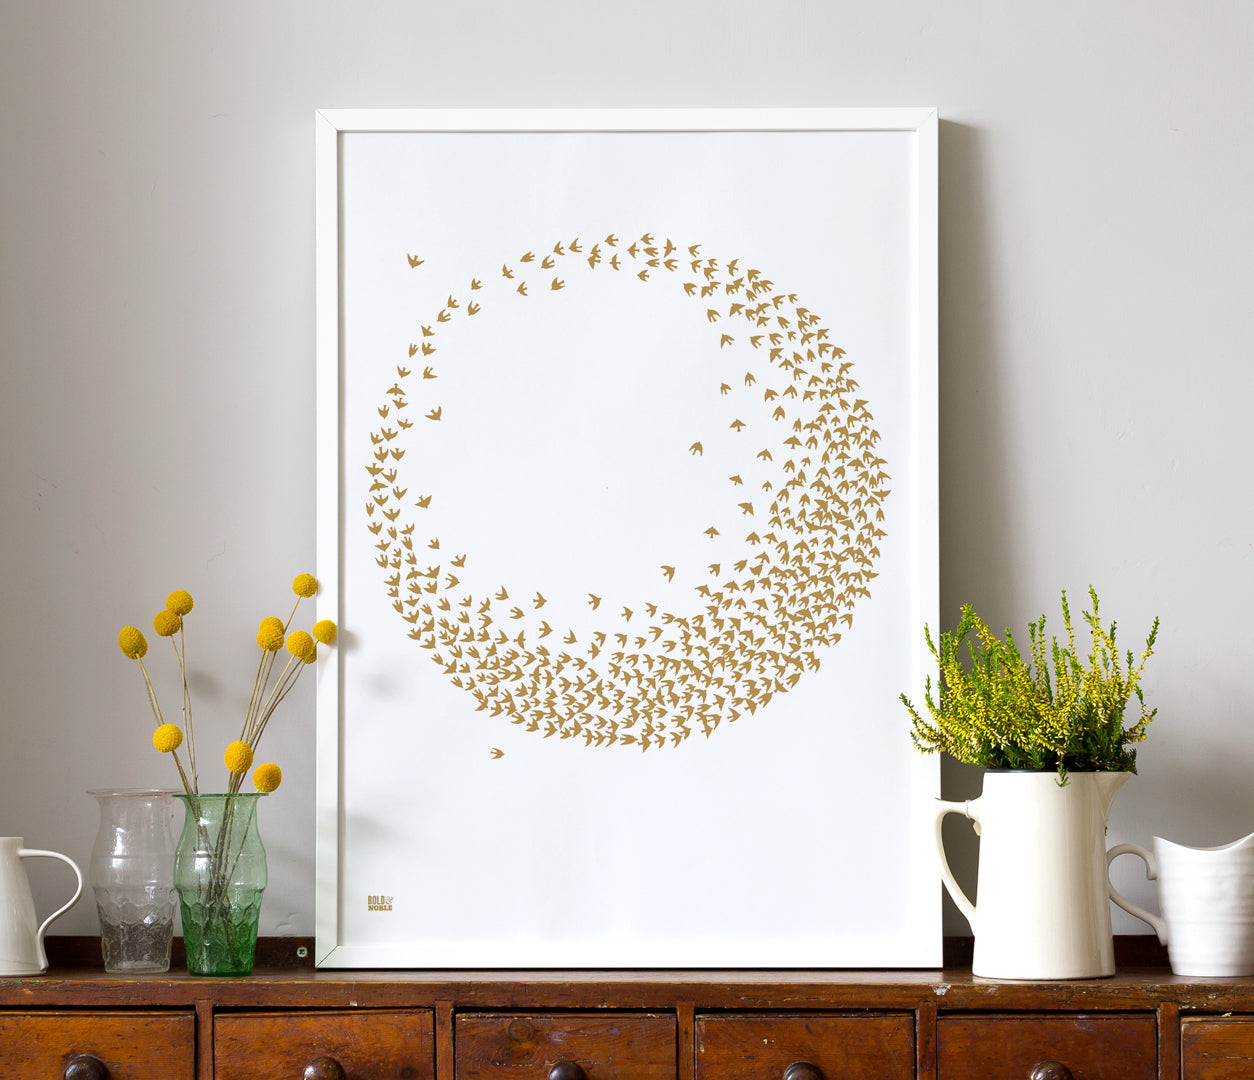 Wall Art ideas: Economical Screen Prints, Flocking Birds in Bronze